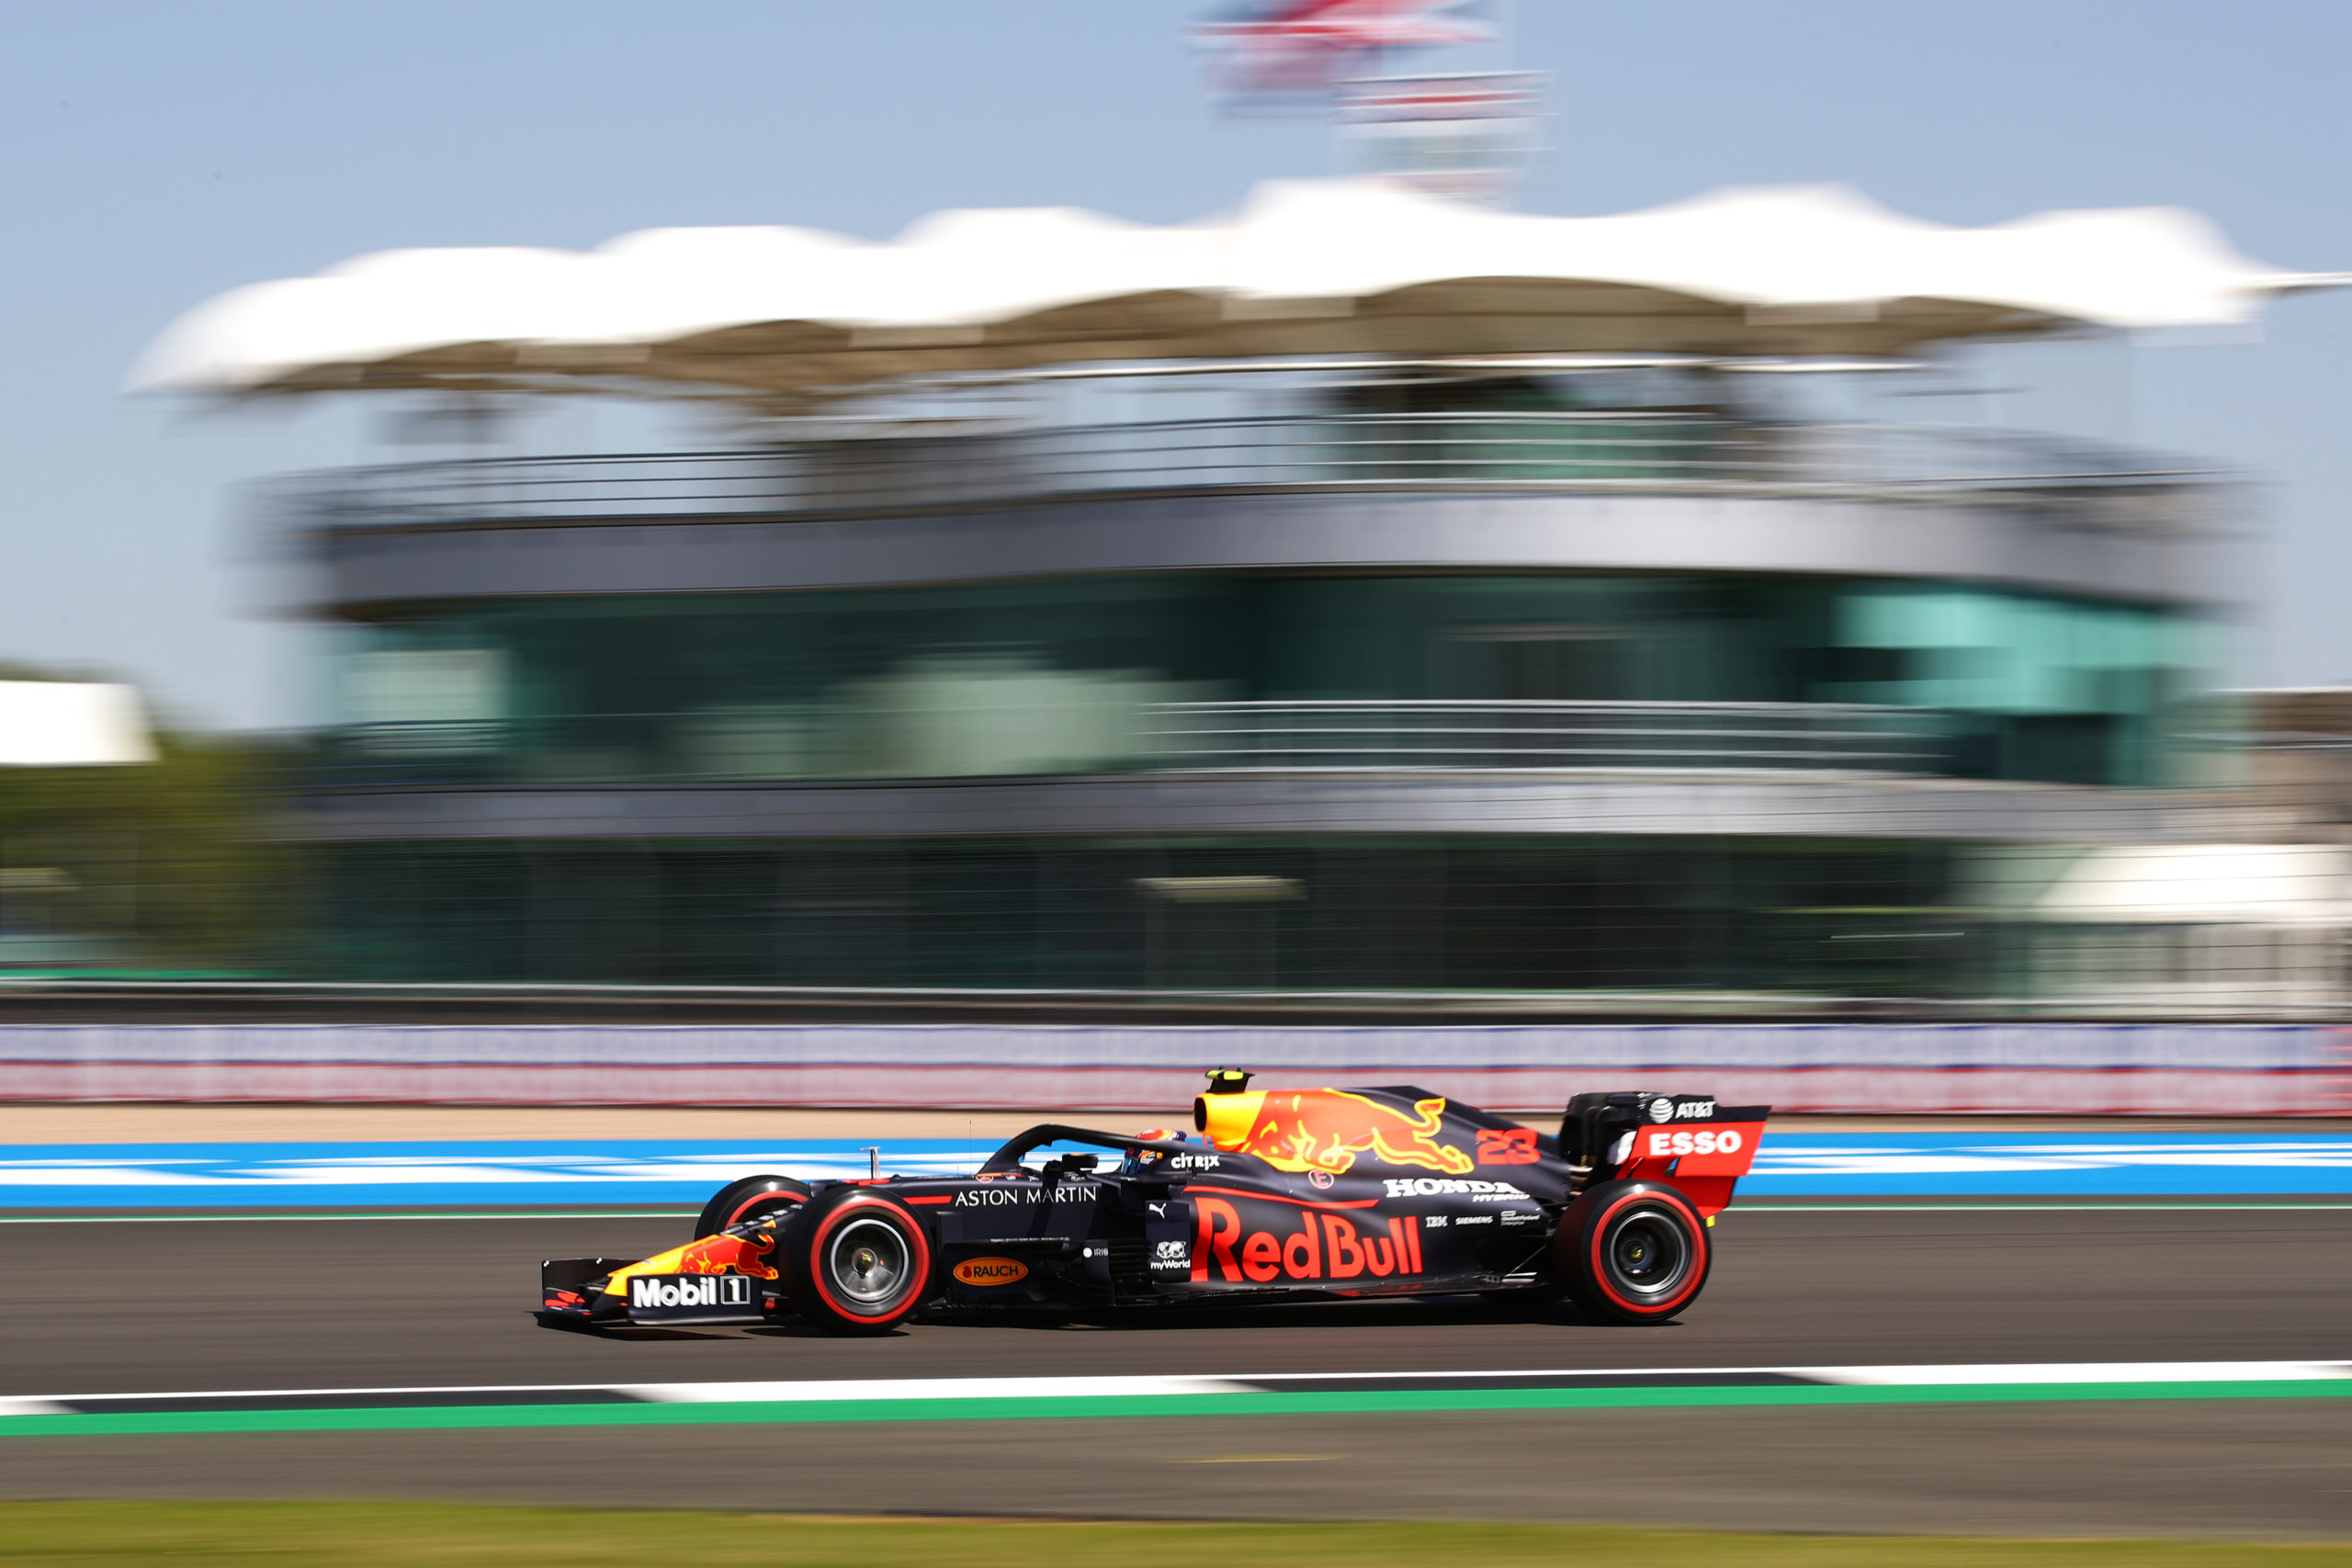 NORTHAMPTON, ENGLAND - JULY 31: Alexander Albon of Thailand driving the (23) Aston Martin Red Bull Racing RB16 on track during practice for the F1 Grand Prix of Great Britain at Silverstone on July 31, 2020 in Northampton, England. (Photo by Bryn Lennon/Getty Images) // Getty Images / Red Bull Content Pool  // AP-24T15DPX52111 // Usage for editorial use only //